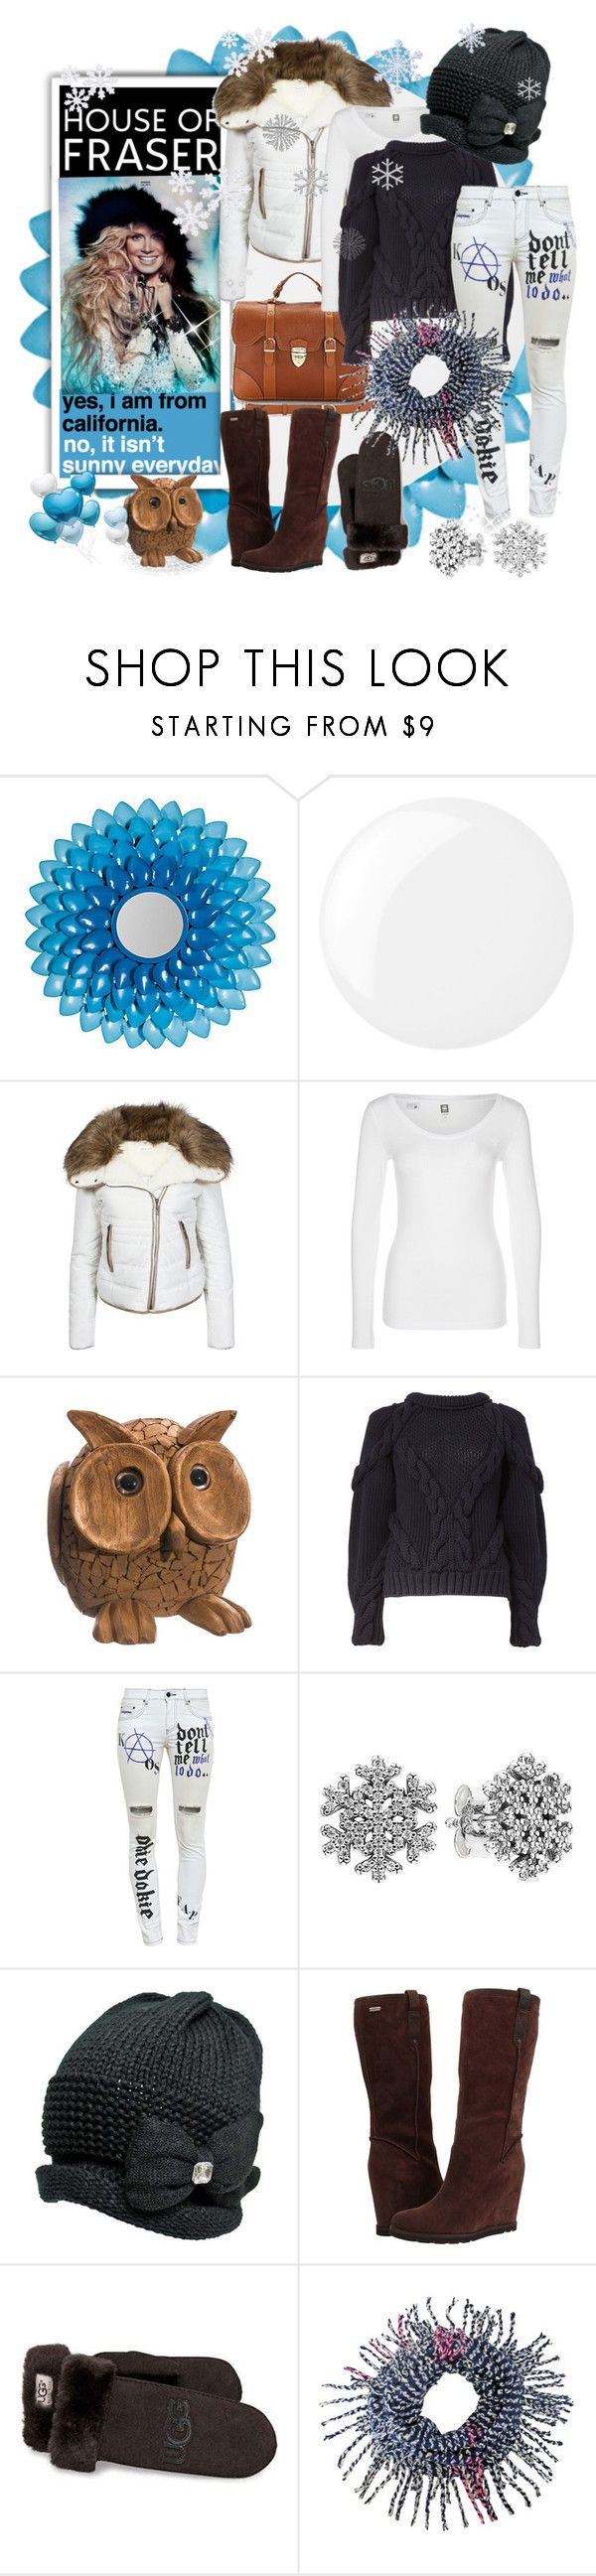 """""""Puffer jacket for winter, House of Fraser"""" by amara-m-hafeez ❤ liked on Polyvore featuring мода, Essie, House of Fraser, Aspinal of London, Urban Bliss, G-Star, Allstate Floral, Alexander McQueen, Filles à papa и Pandora"""